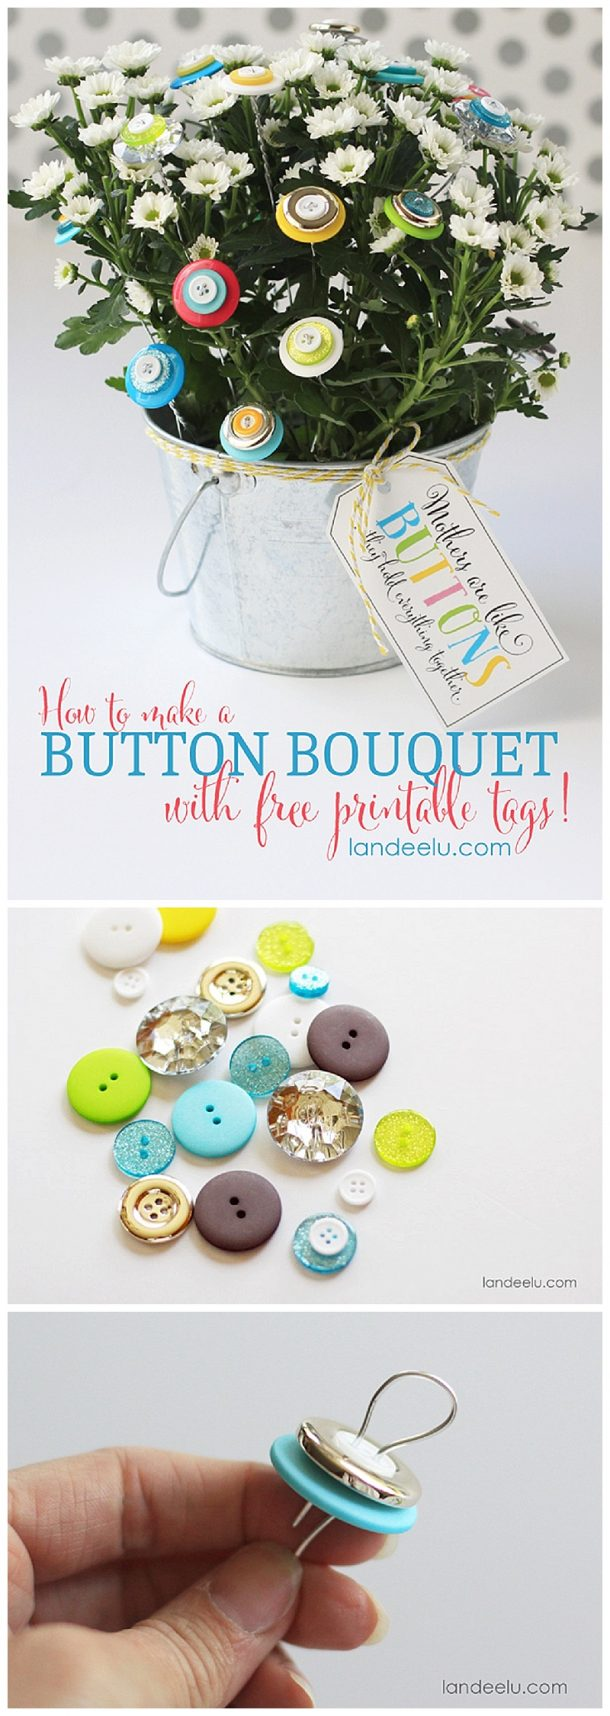 "How to make a BUTTON BOUQUET -DIY GIFT project Tutorial with FREE PRINTABLE Gift Tags for Mother's Day, Teacher Appreciation or a Friend - because they are the ""BUTTONS that hold us together!"""